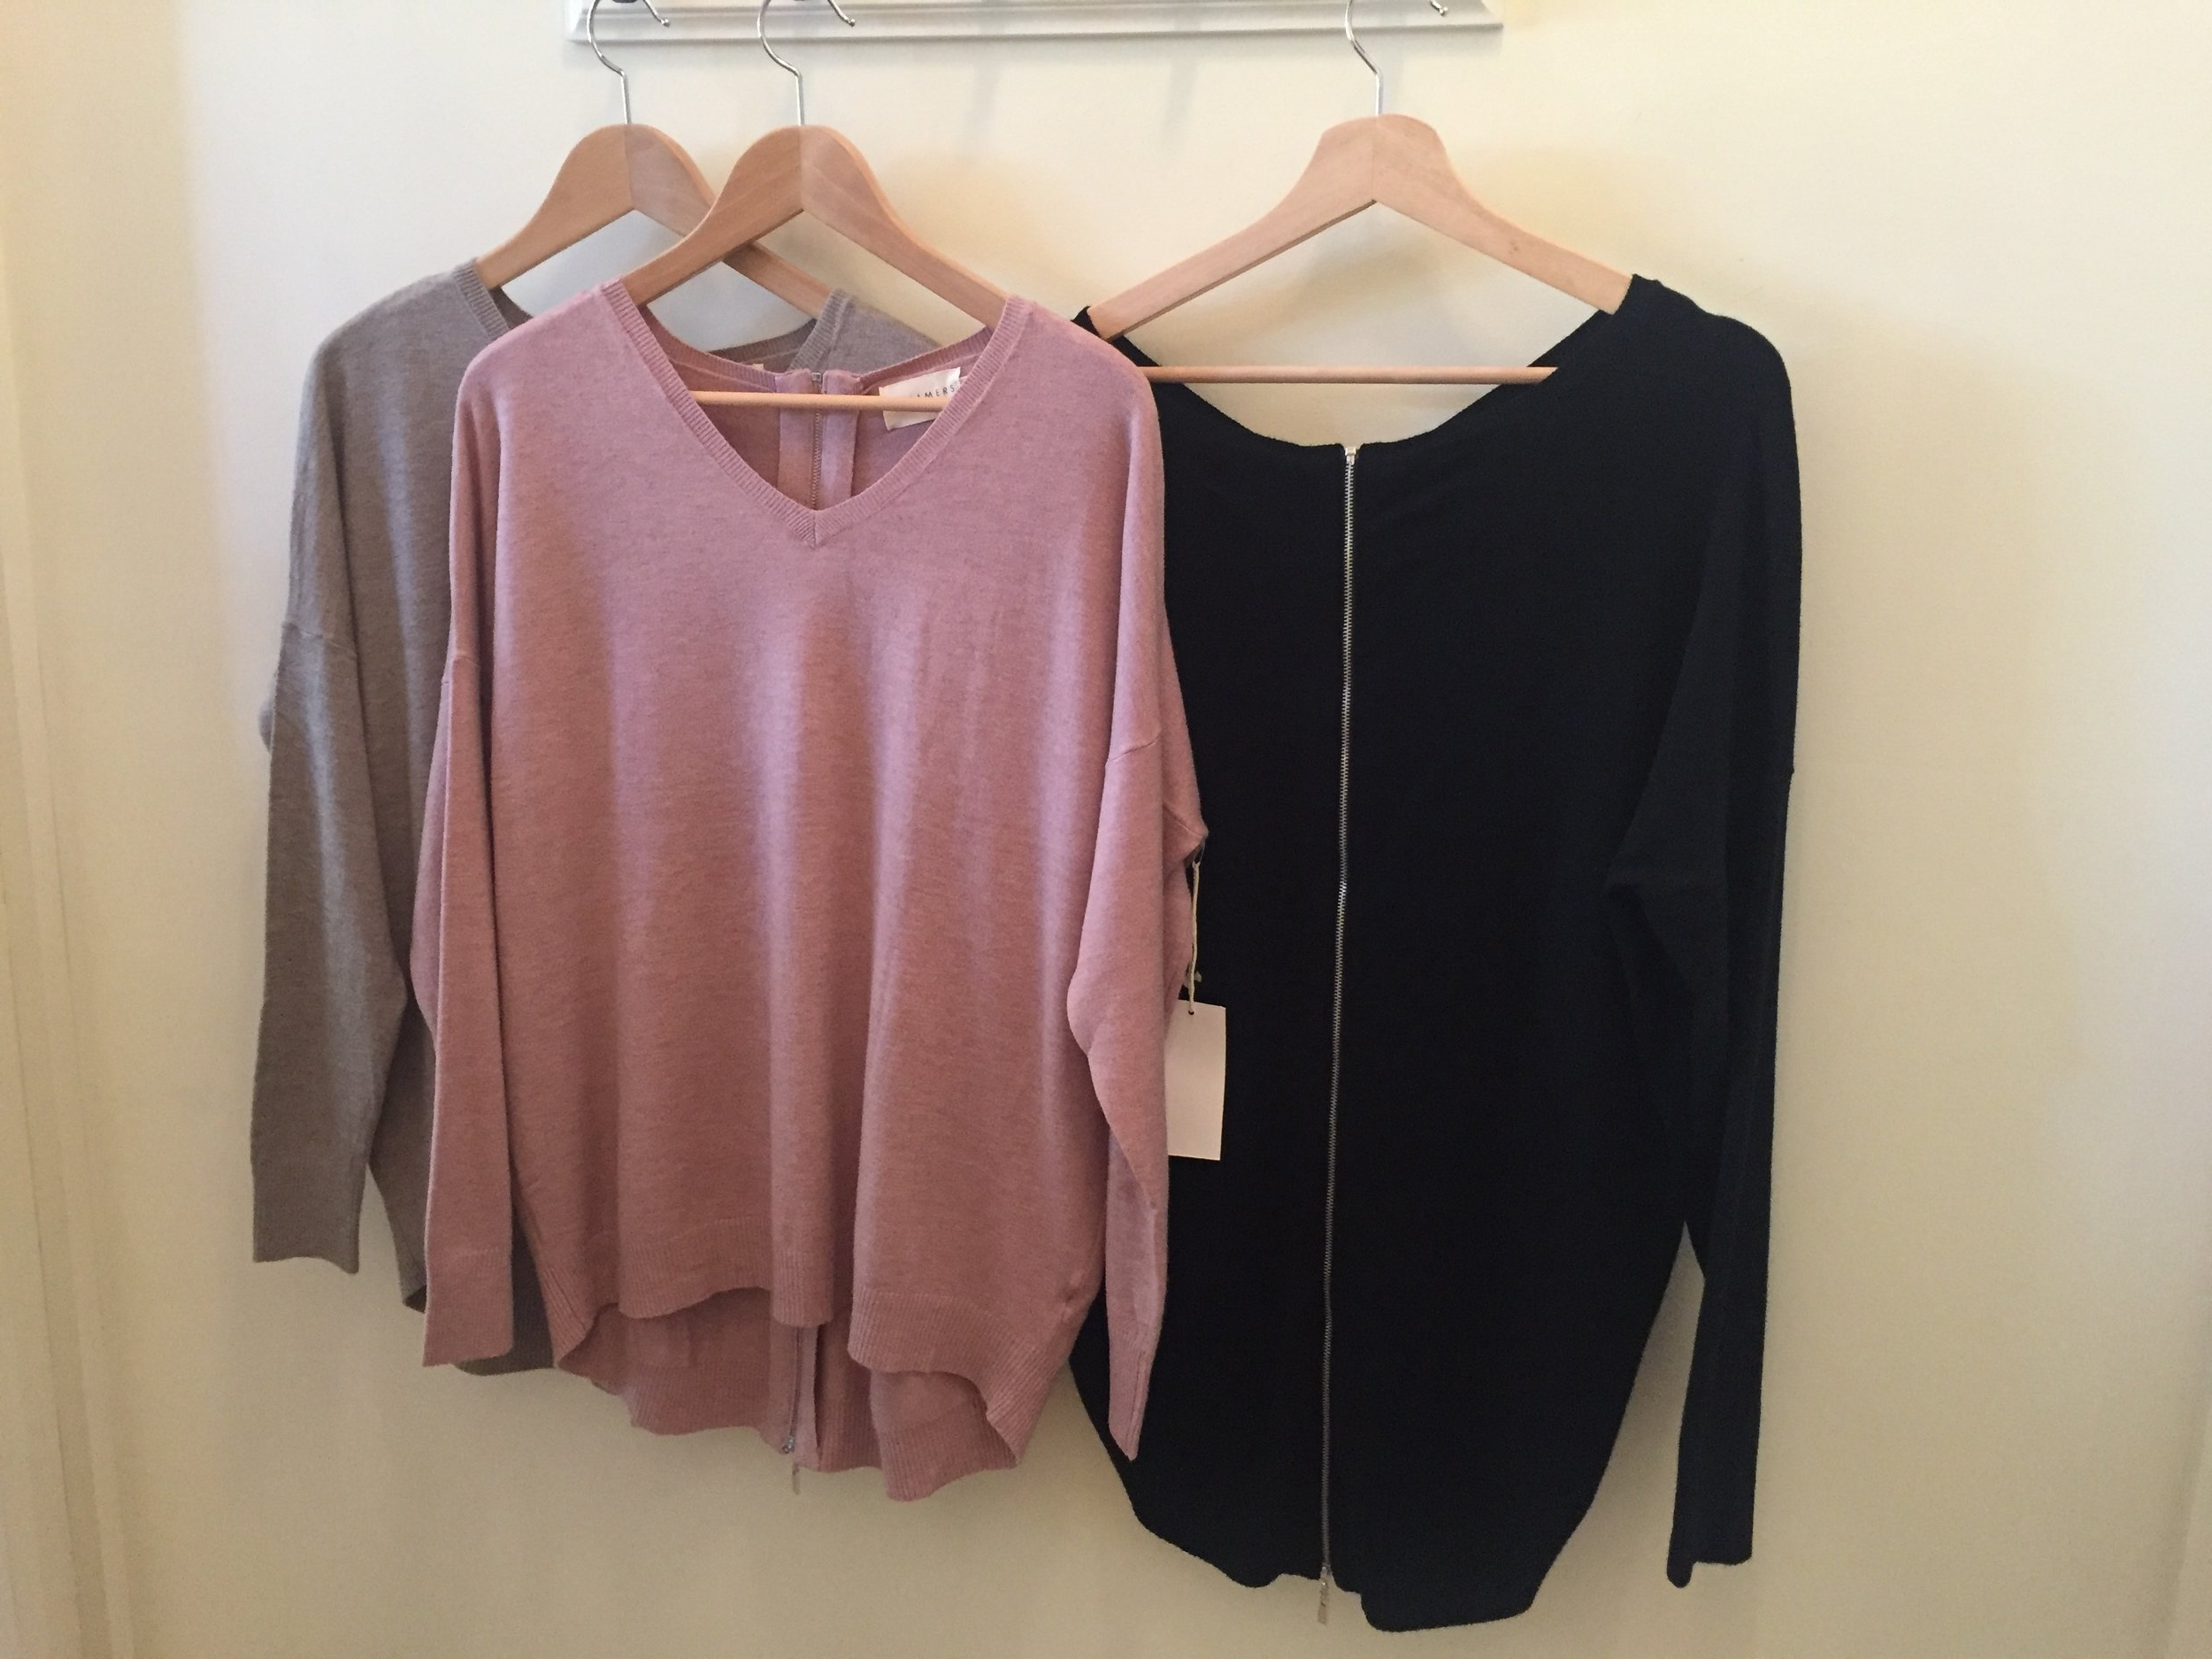 Exposed Zip-back Dreamers Sweater, $42